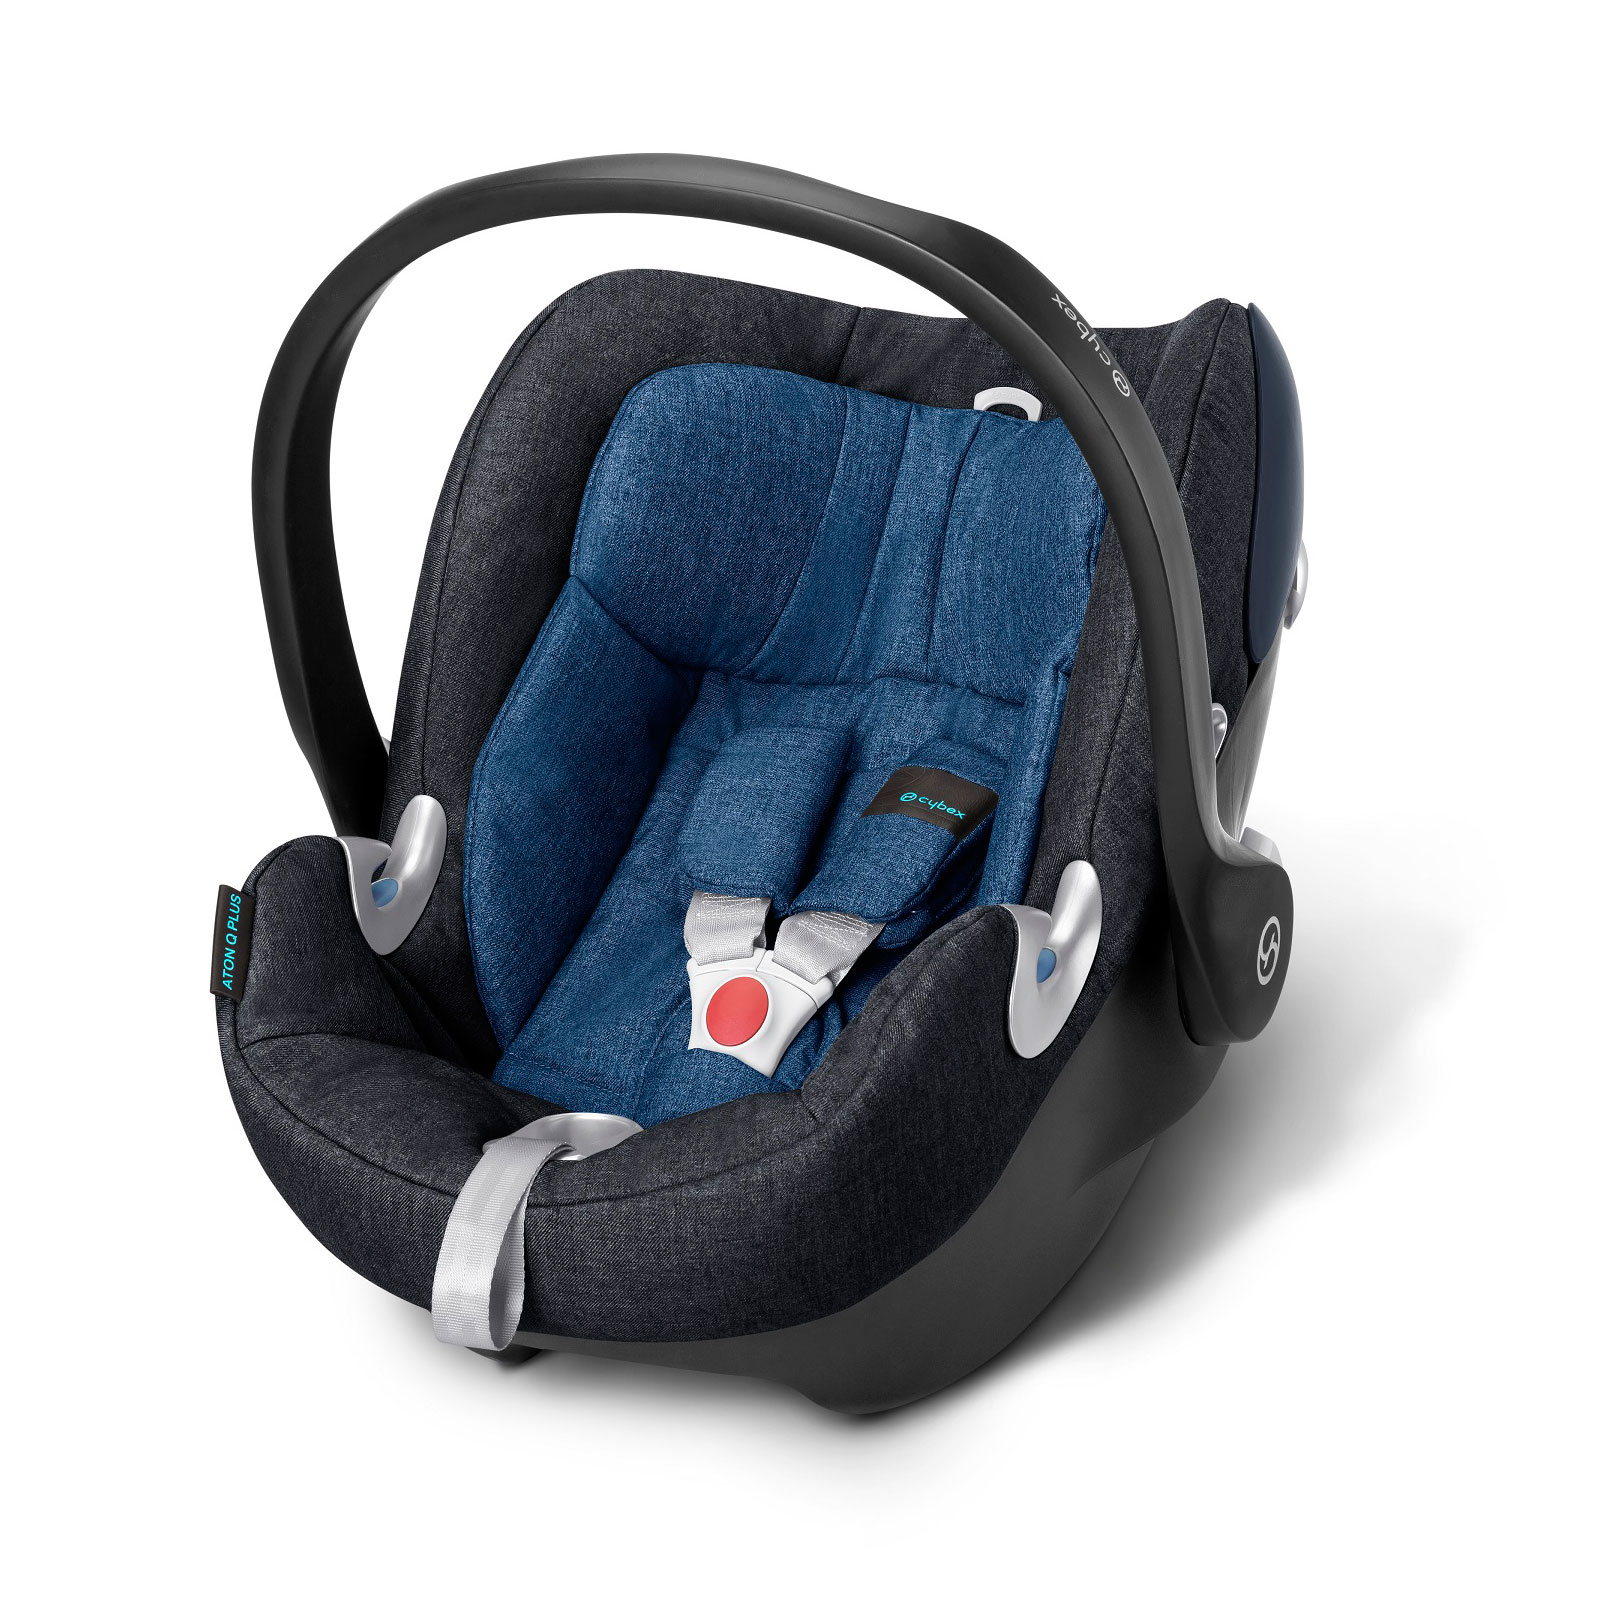 Автокресло Cybex Aton Q Plus True Blue<br>